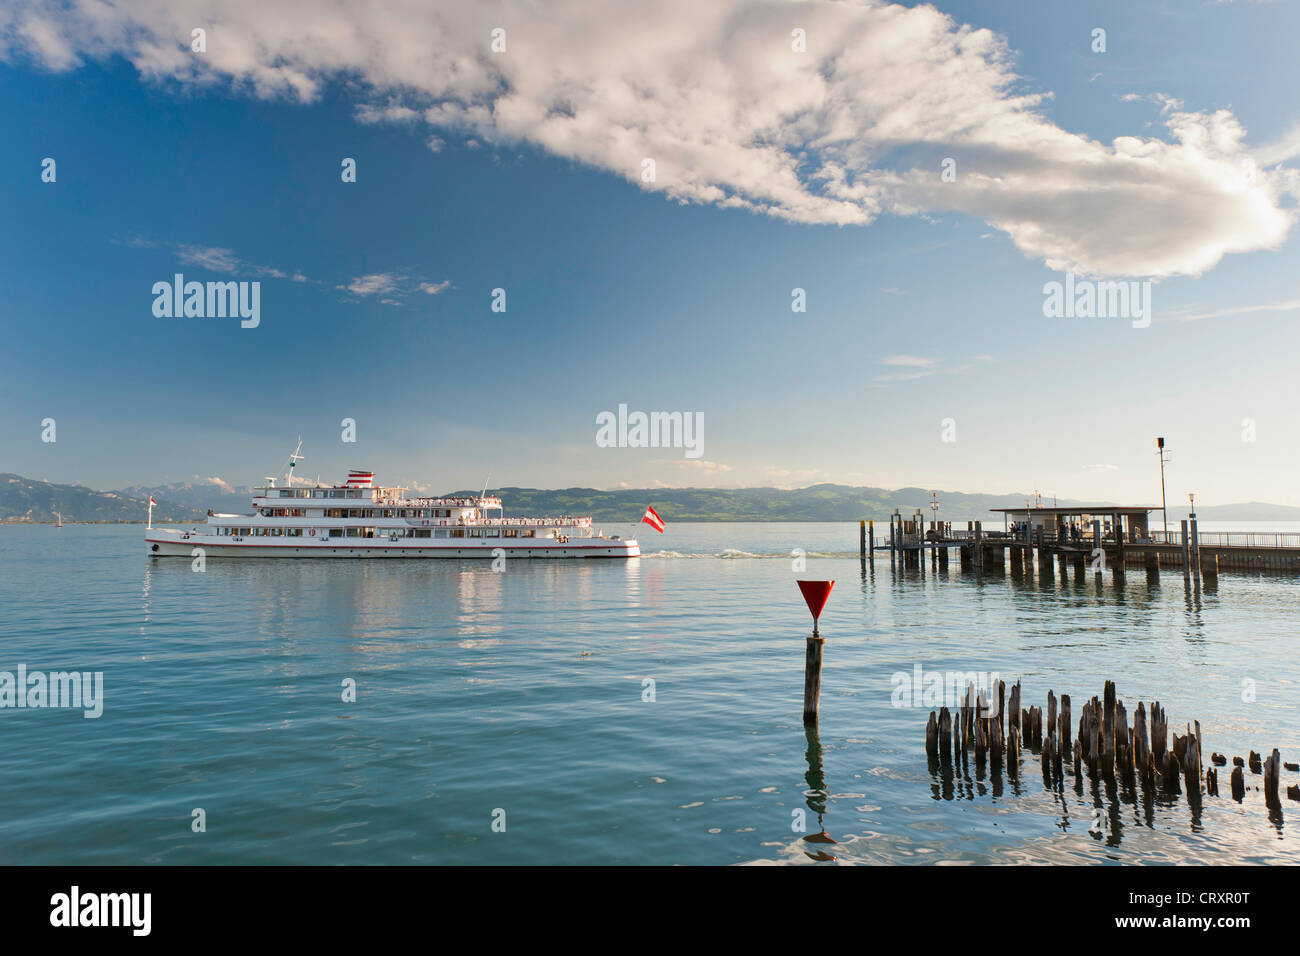 Germany, Wasserburg, View of ship departing from jetty - Stock Image